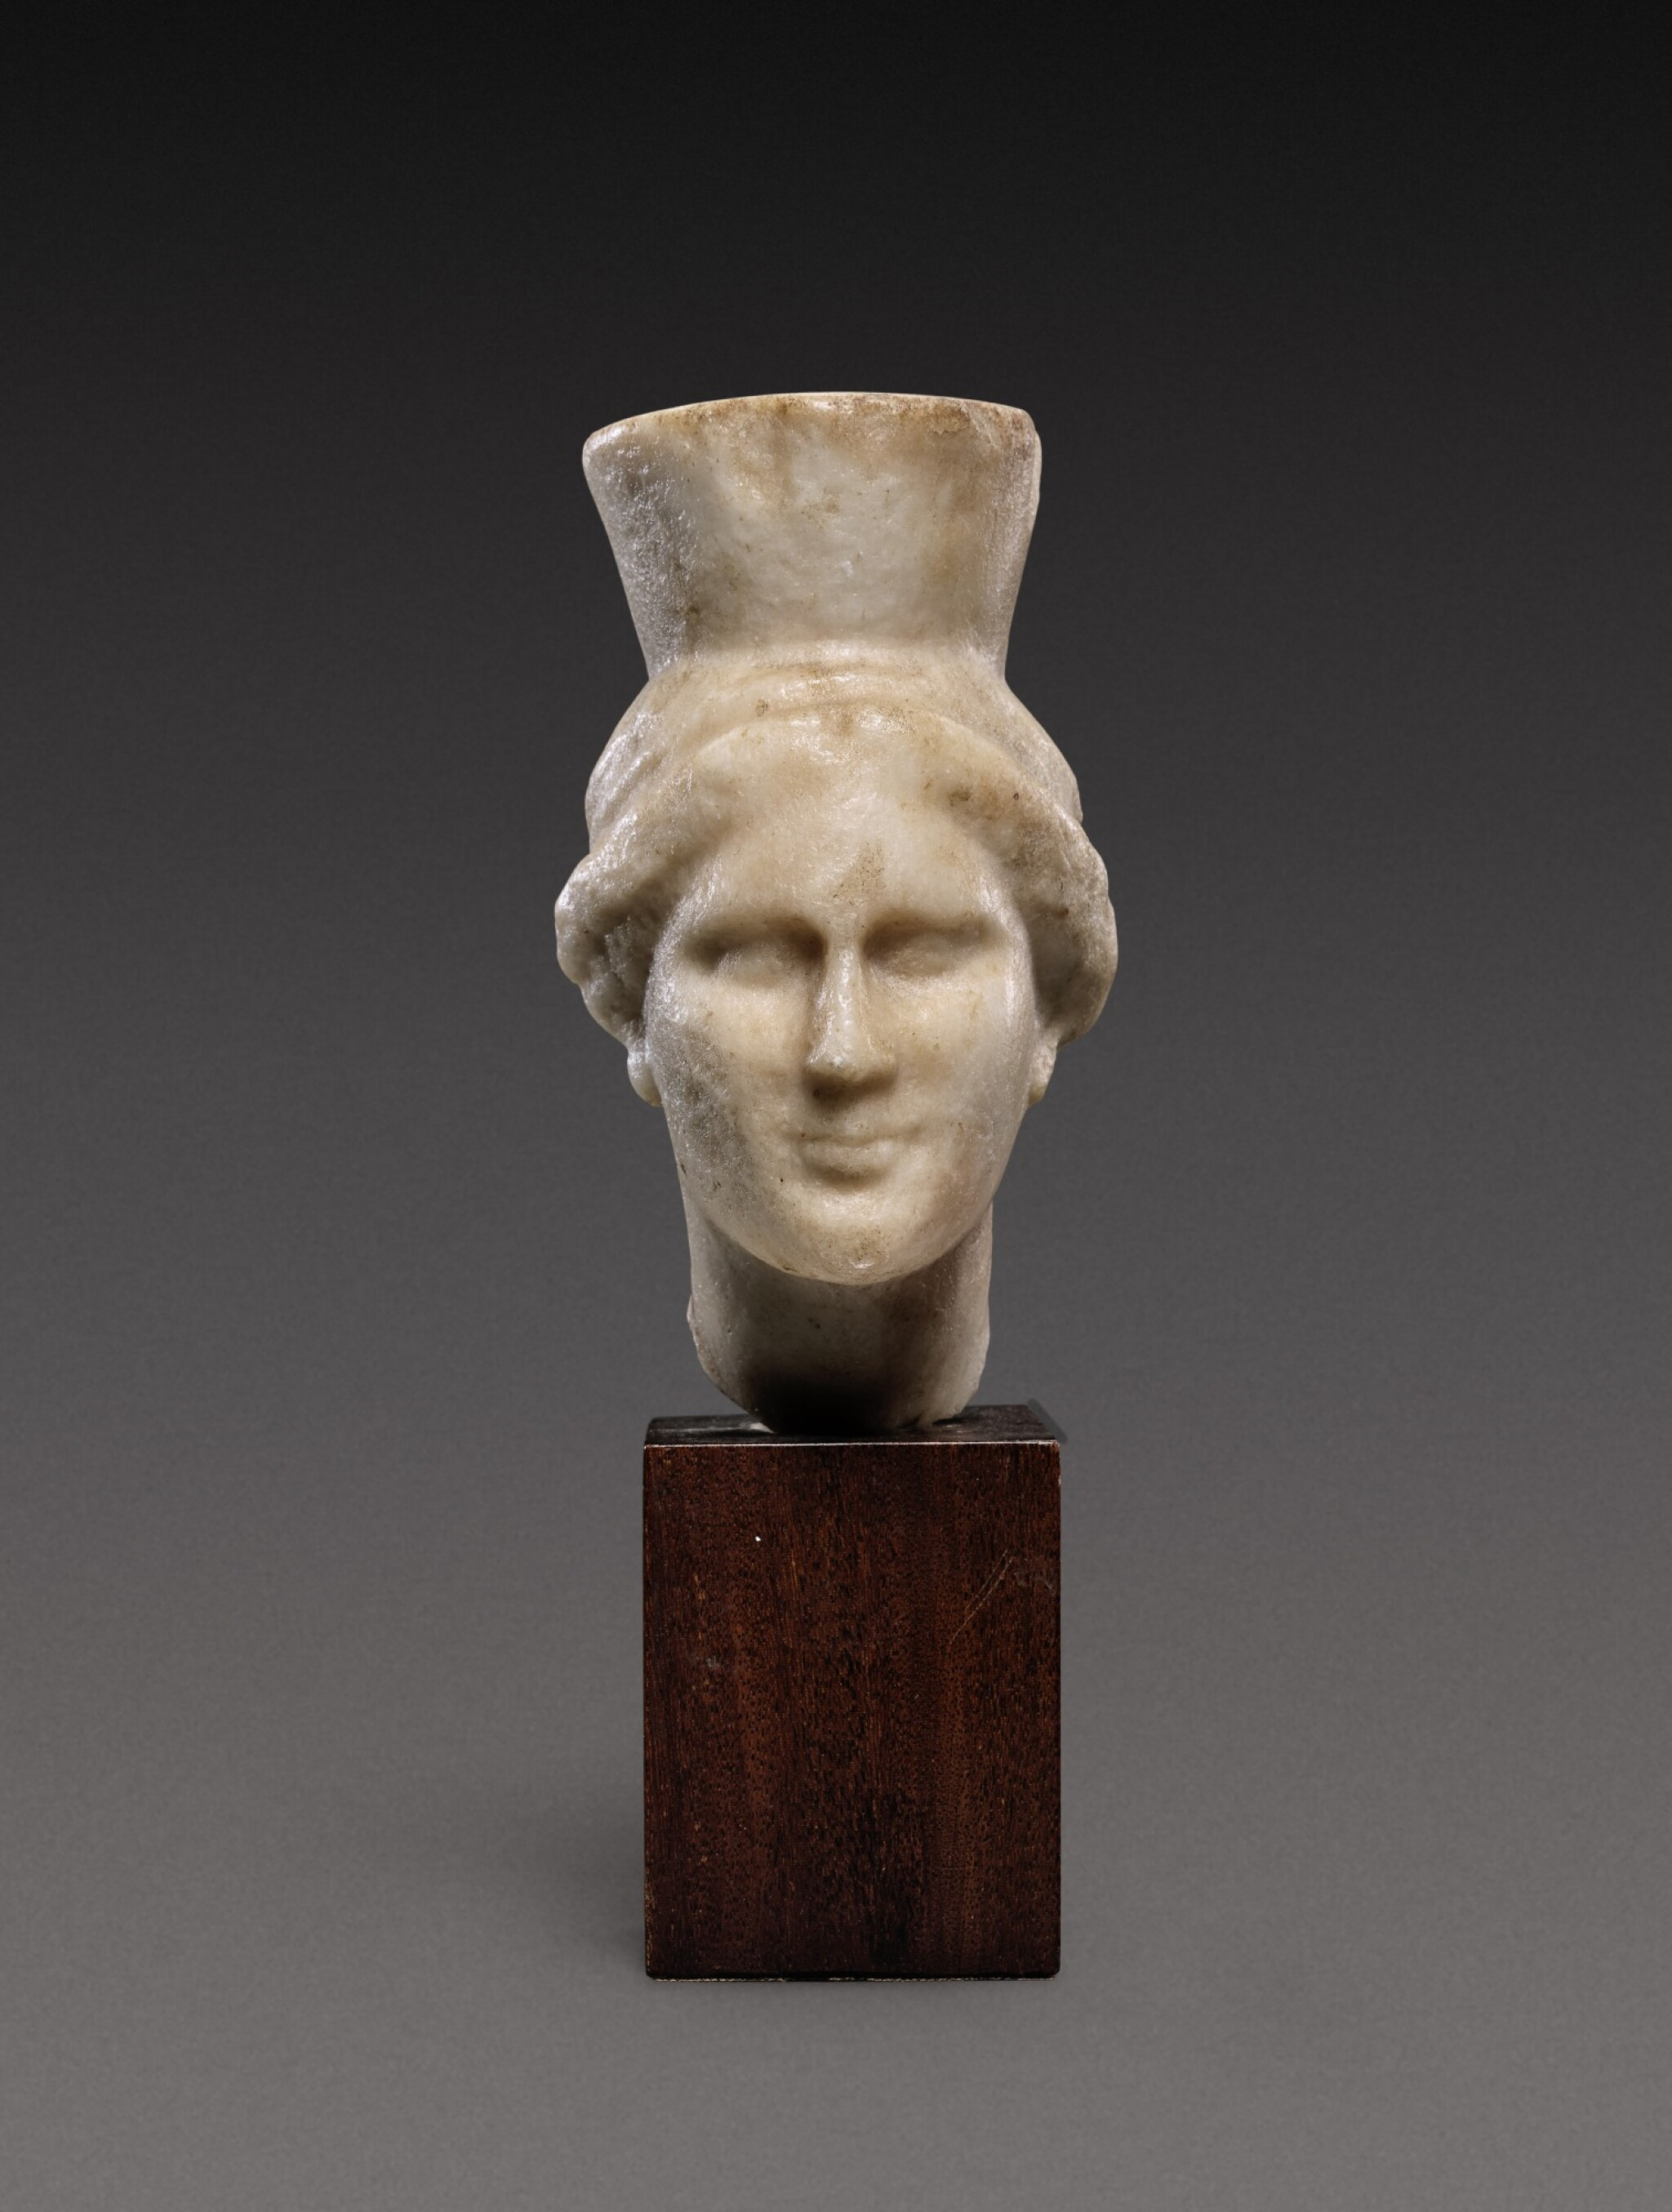 View 1 of Lot 92. A Late Hellenistic Marble Head of a Goddess, probably Kybele, 2nd/1st Century B.C..